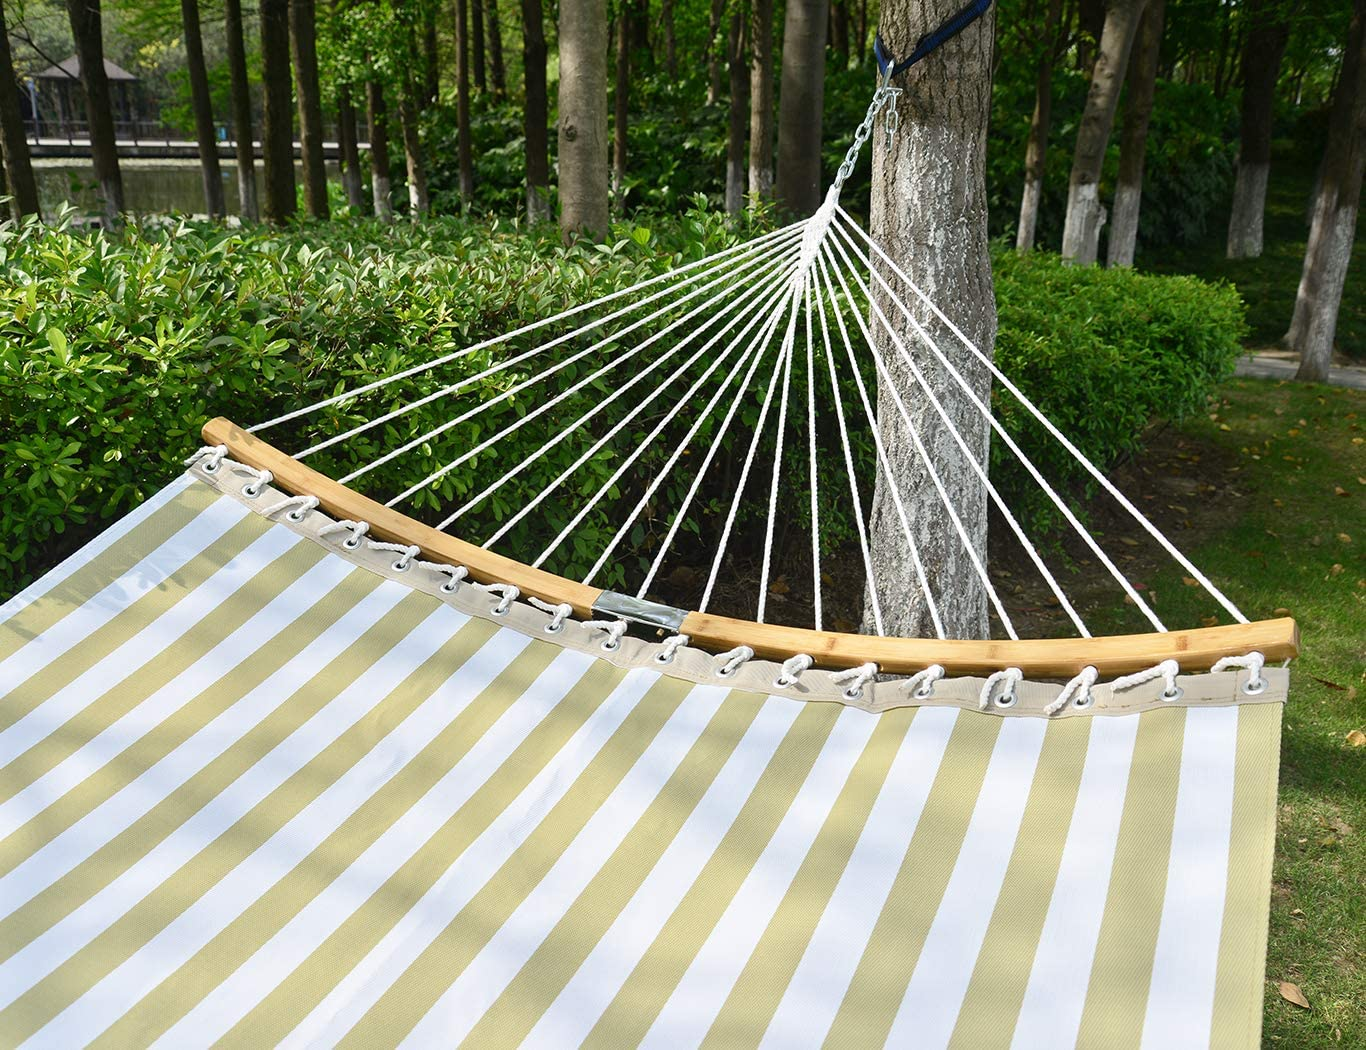 Patio Watcher 14 FT Quick Dry Hammock Folding Curved Bamboo Spreader Bar Portable Hammock for Camping Outdoor Patio Yard Water Resistance and UV Resistance